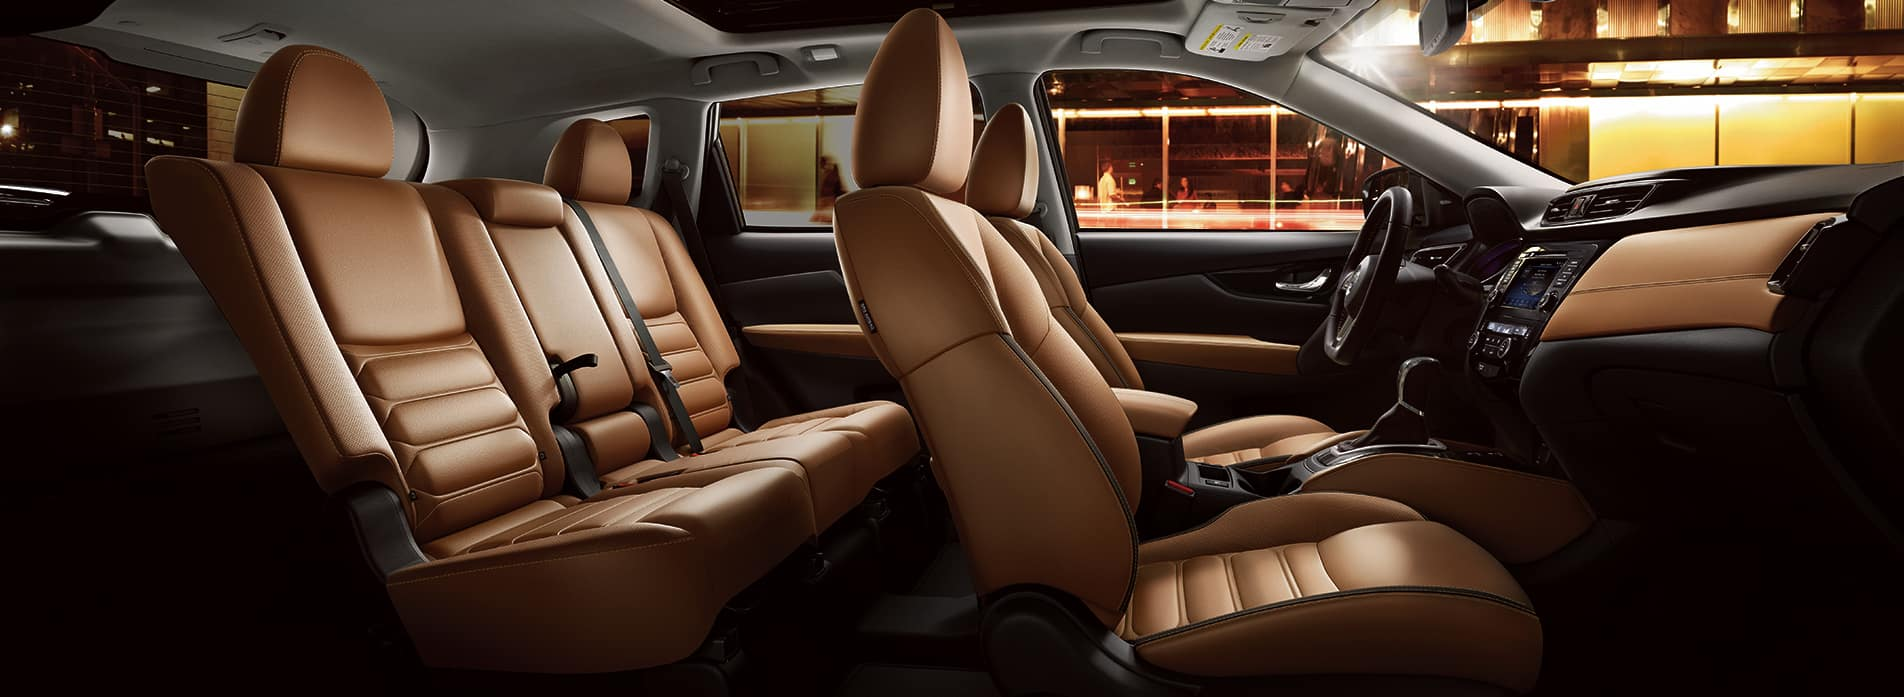 The 2020 Rogue model features at Boch Nissan South in North Attleboro | The brown leather interior of the 2020 rogue